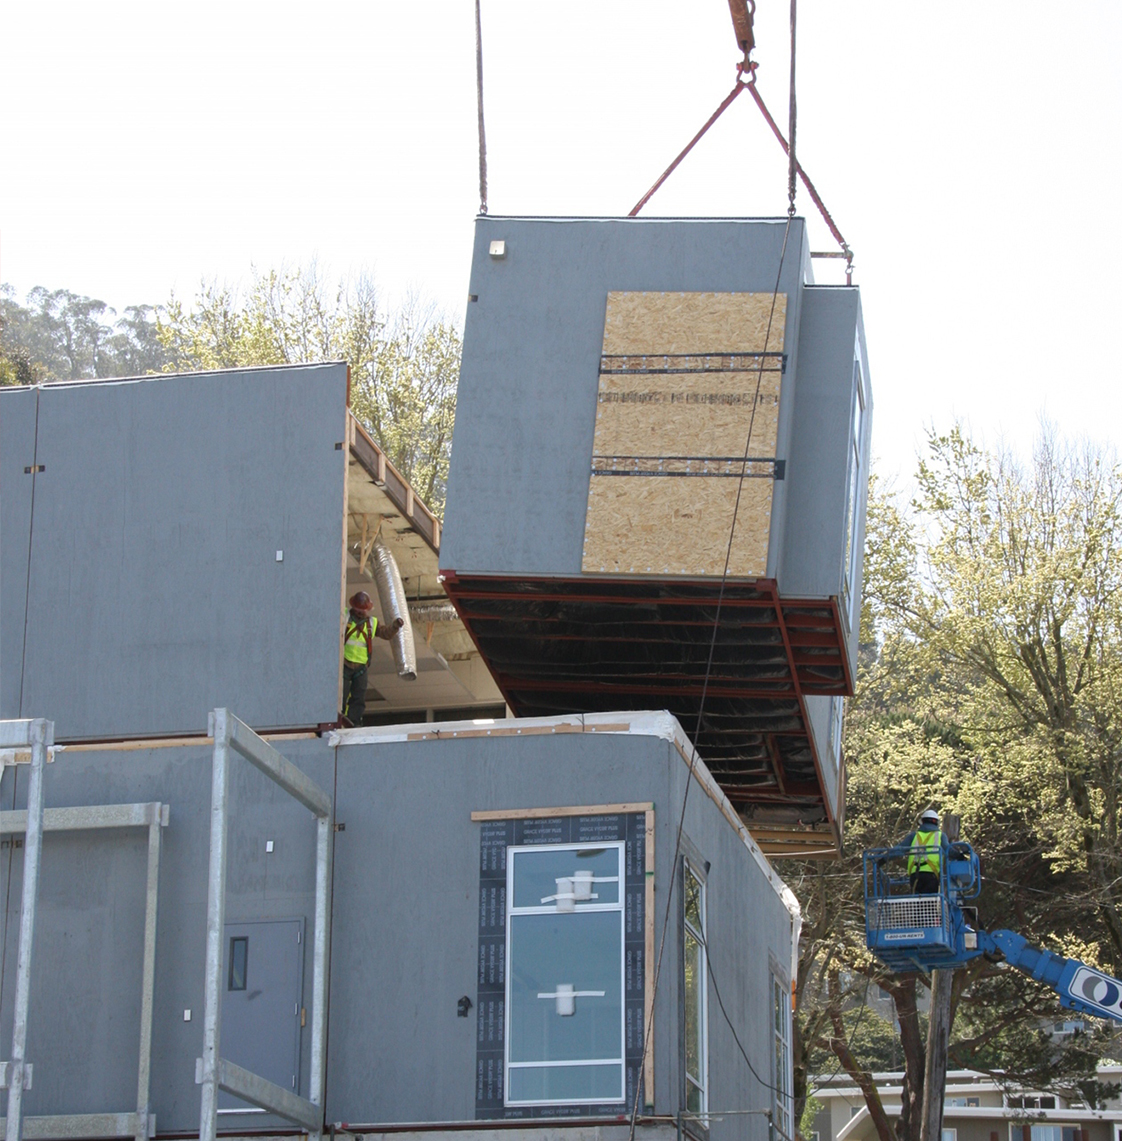 UC San Francisco Kirkham Child Development Center Prefabrication Assembly with Crane